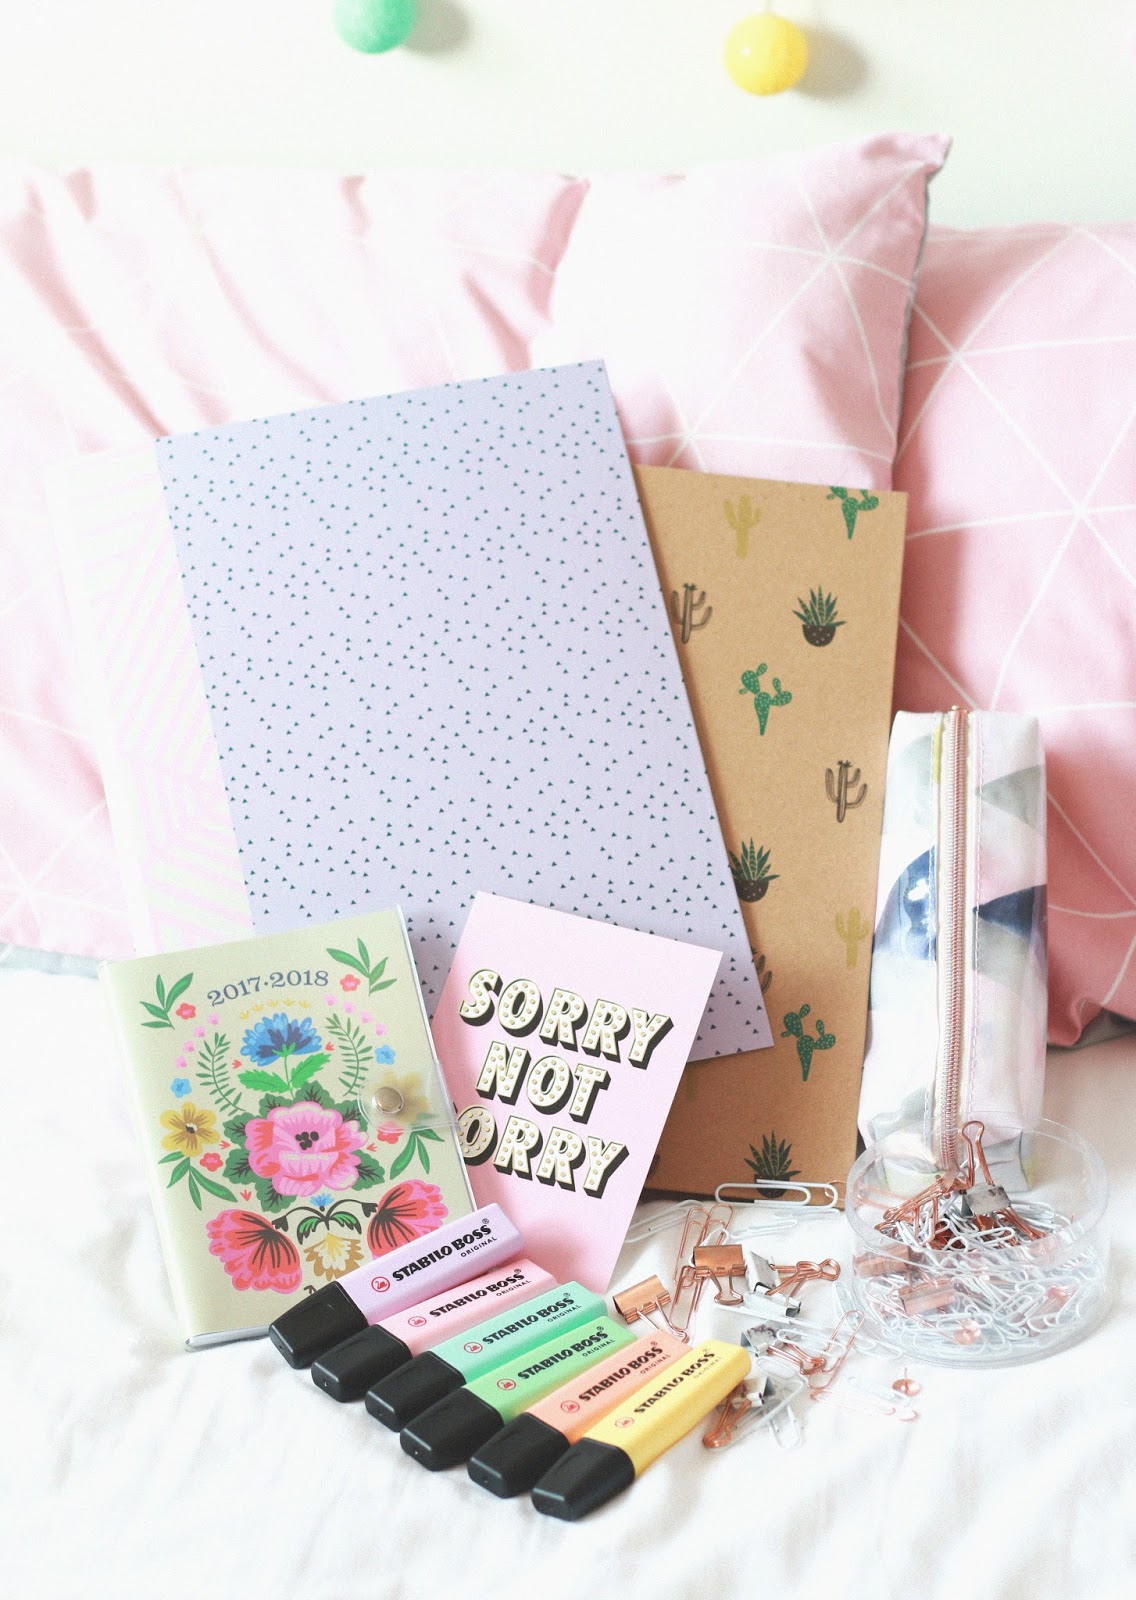 forever september, beauty, fashion, lifestyle, blogger, university, haul, stationery, wilko, paperchase, stabilo, highlighters, notebook, primark ,marble, copper, happy, ring binder, purple, cactus,